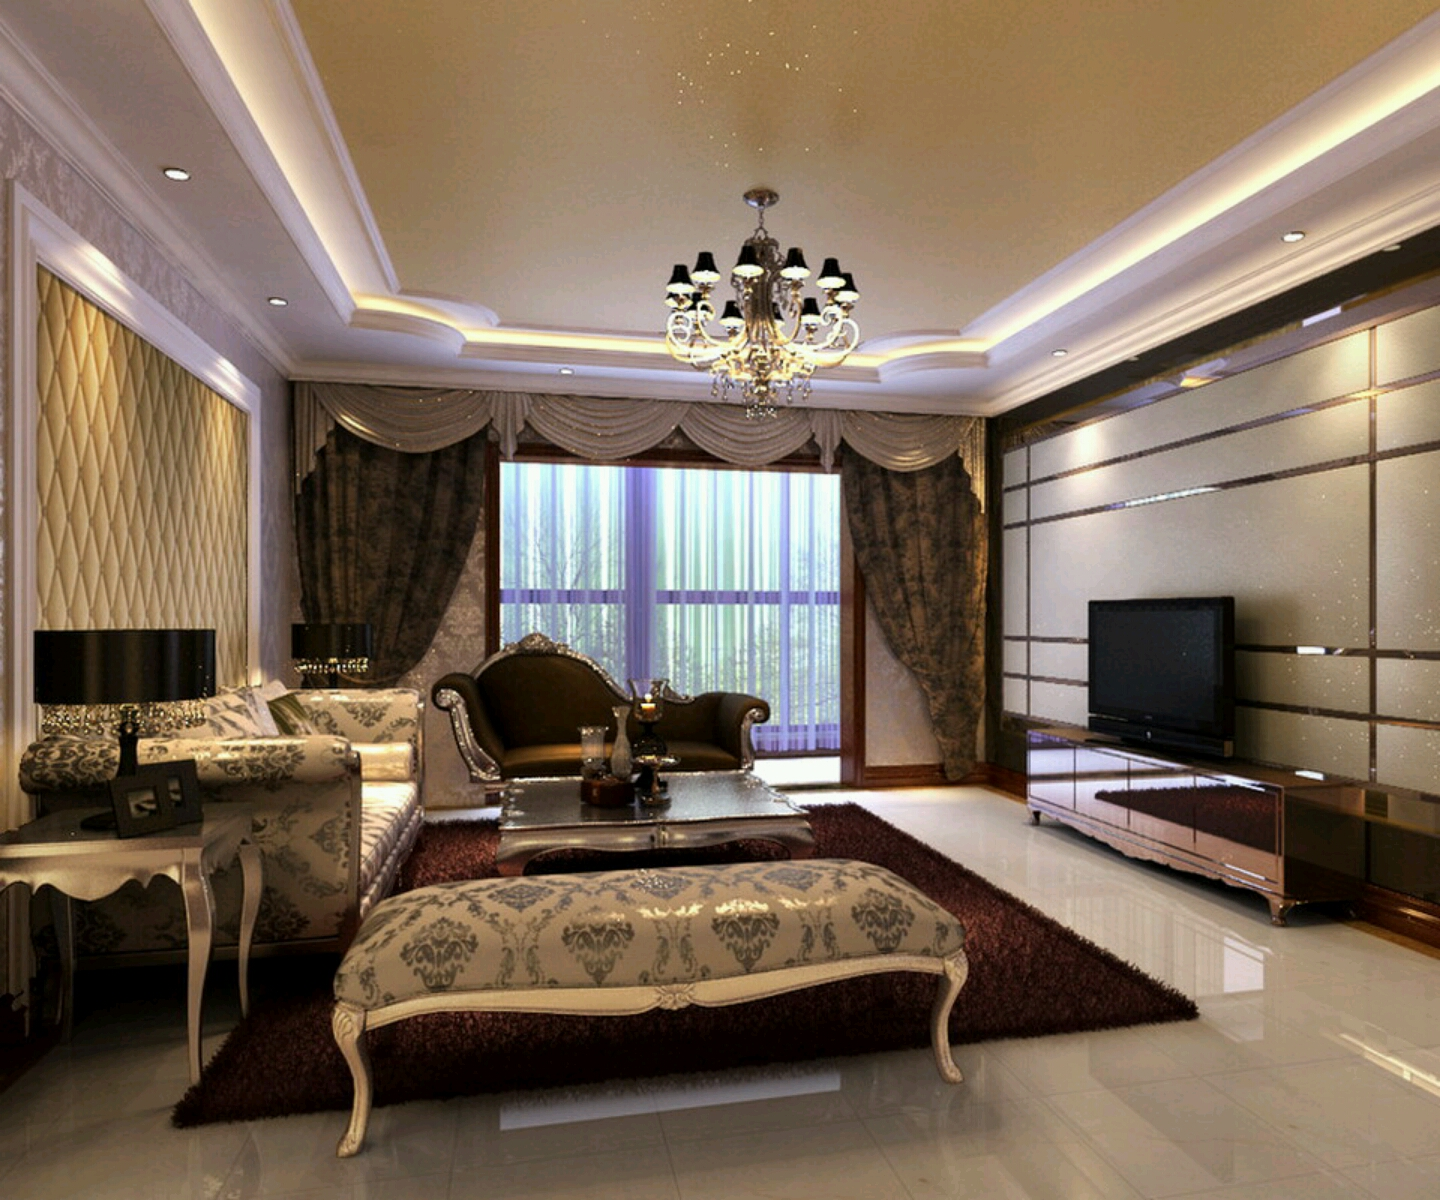 Interior decorating ideas living rooms dream house for Interior furnishing ideas